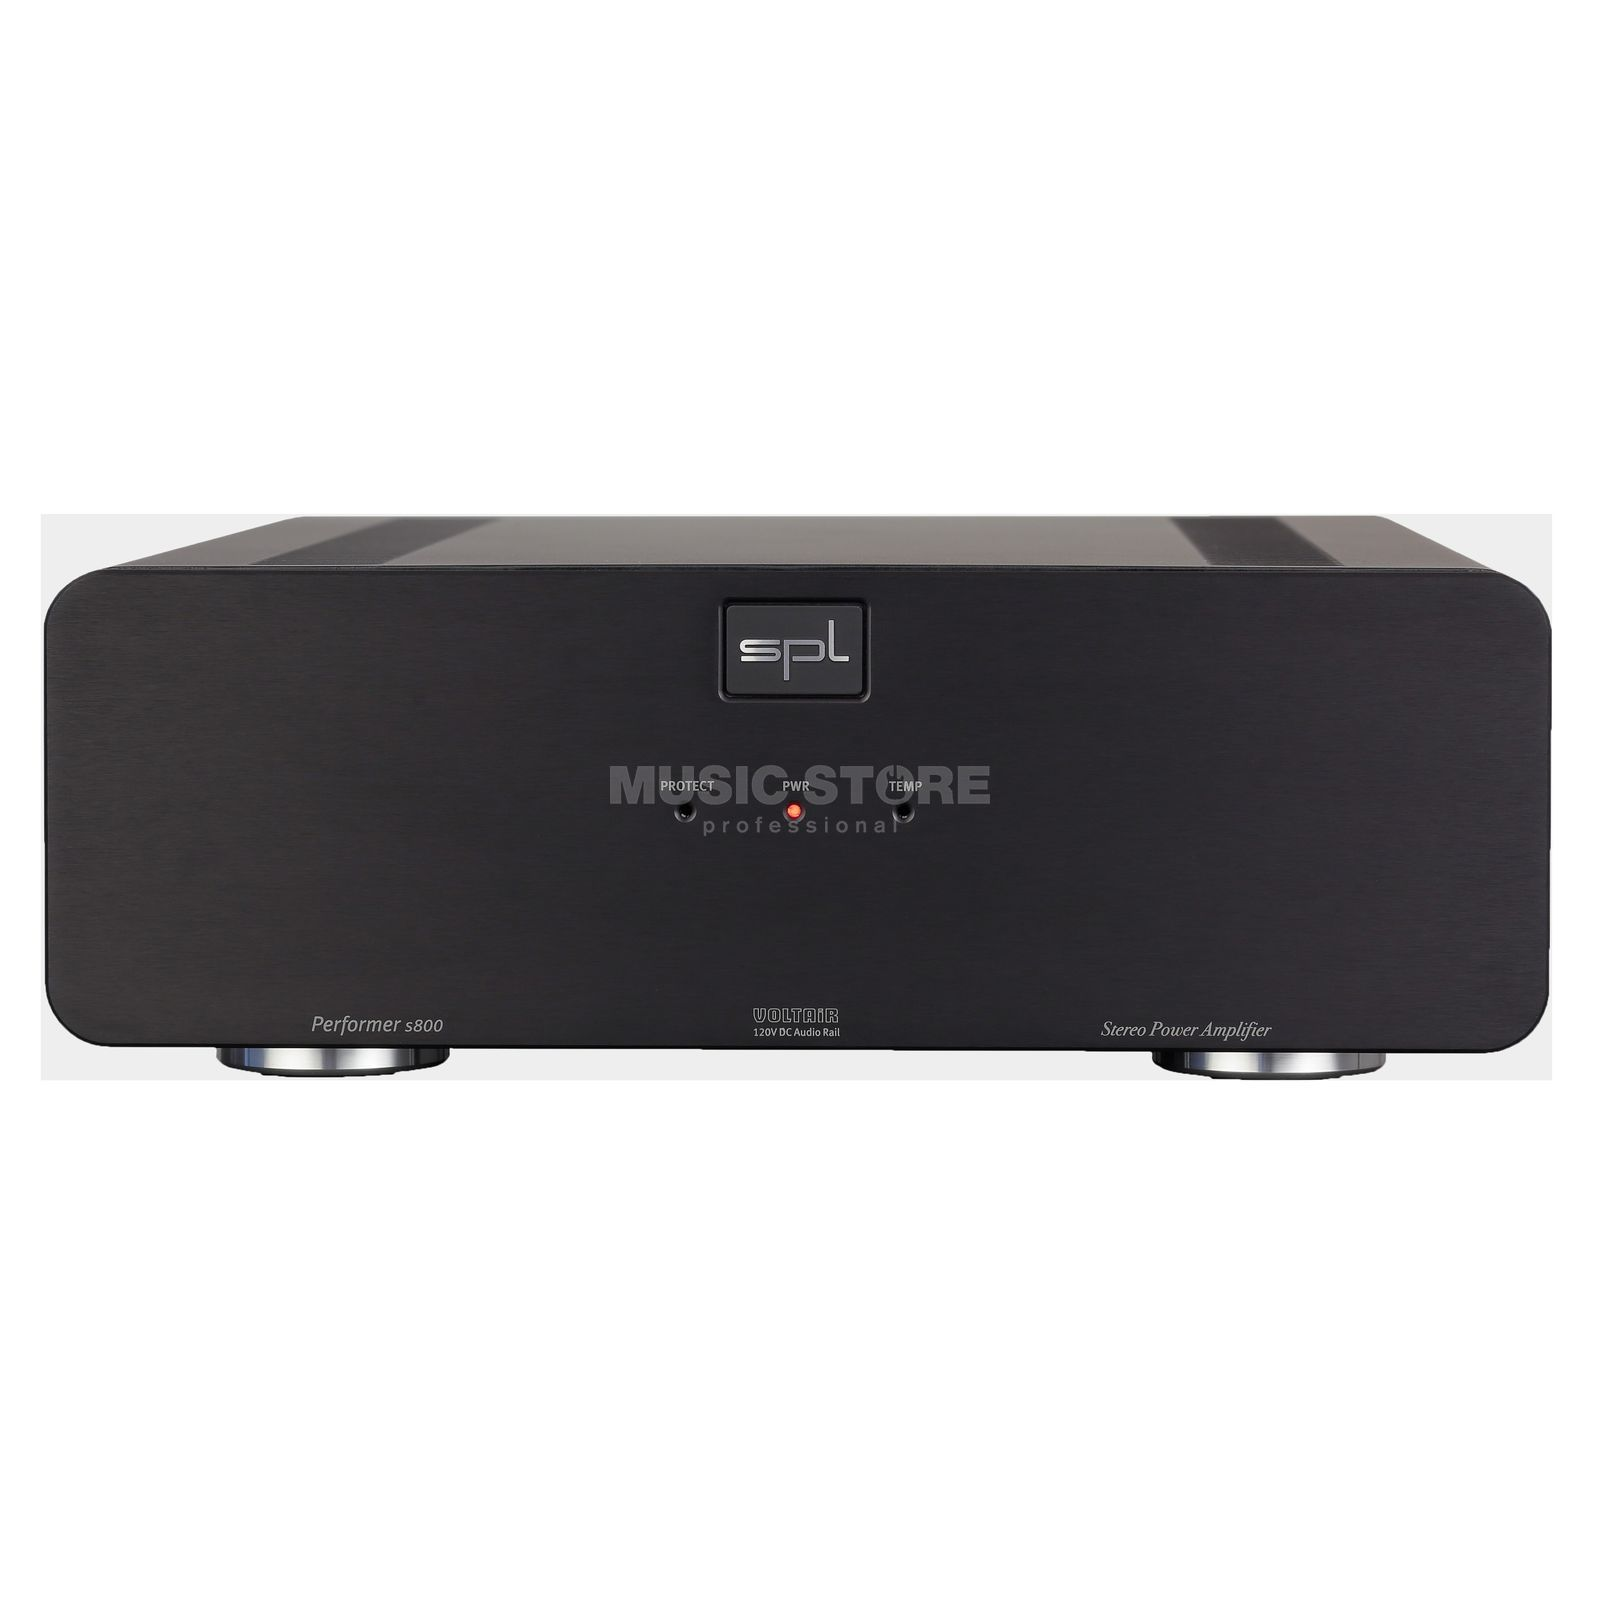 SPL Electronics Pro-Fi Performer S800 black High-End Stereo-Endstufe Product Image